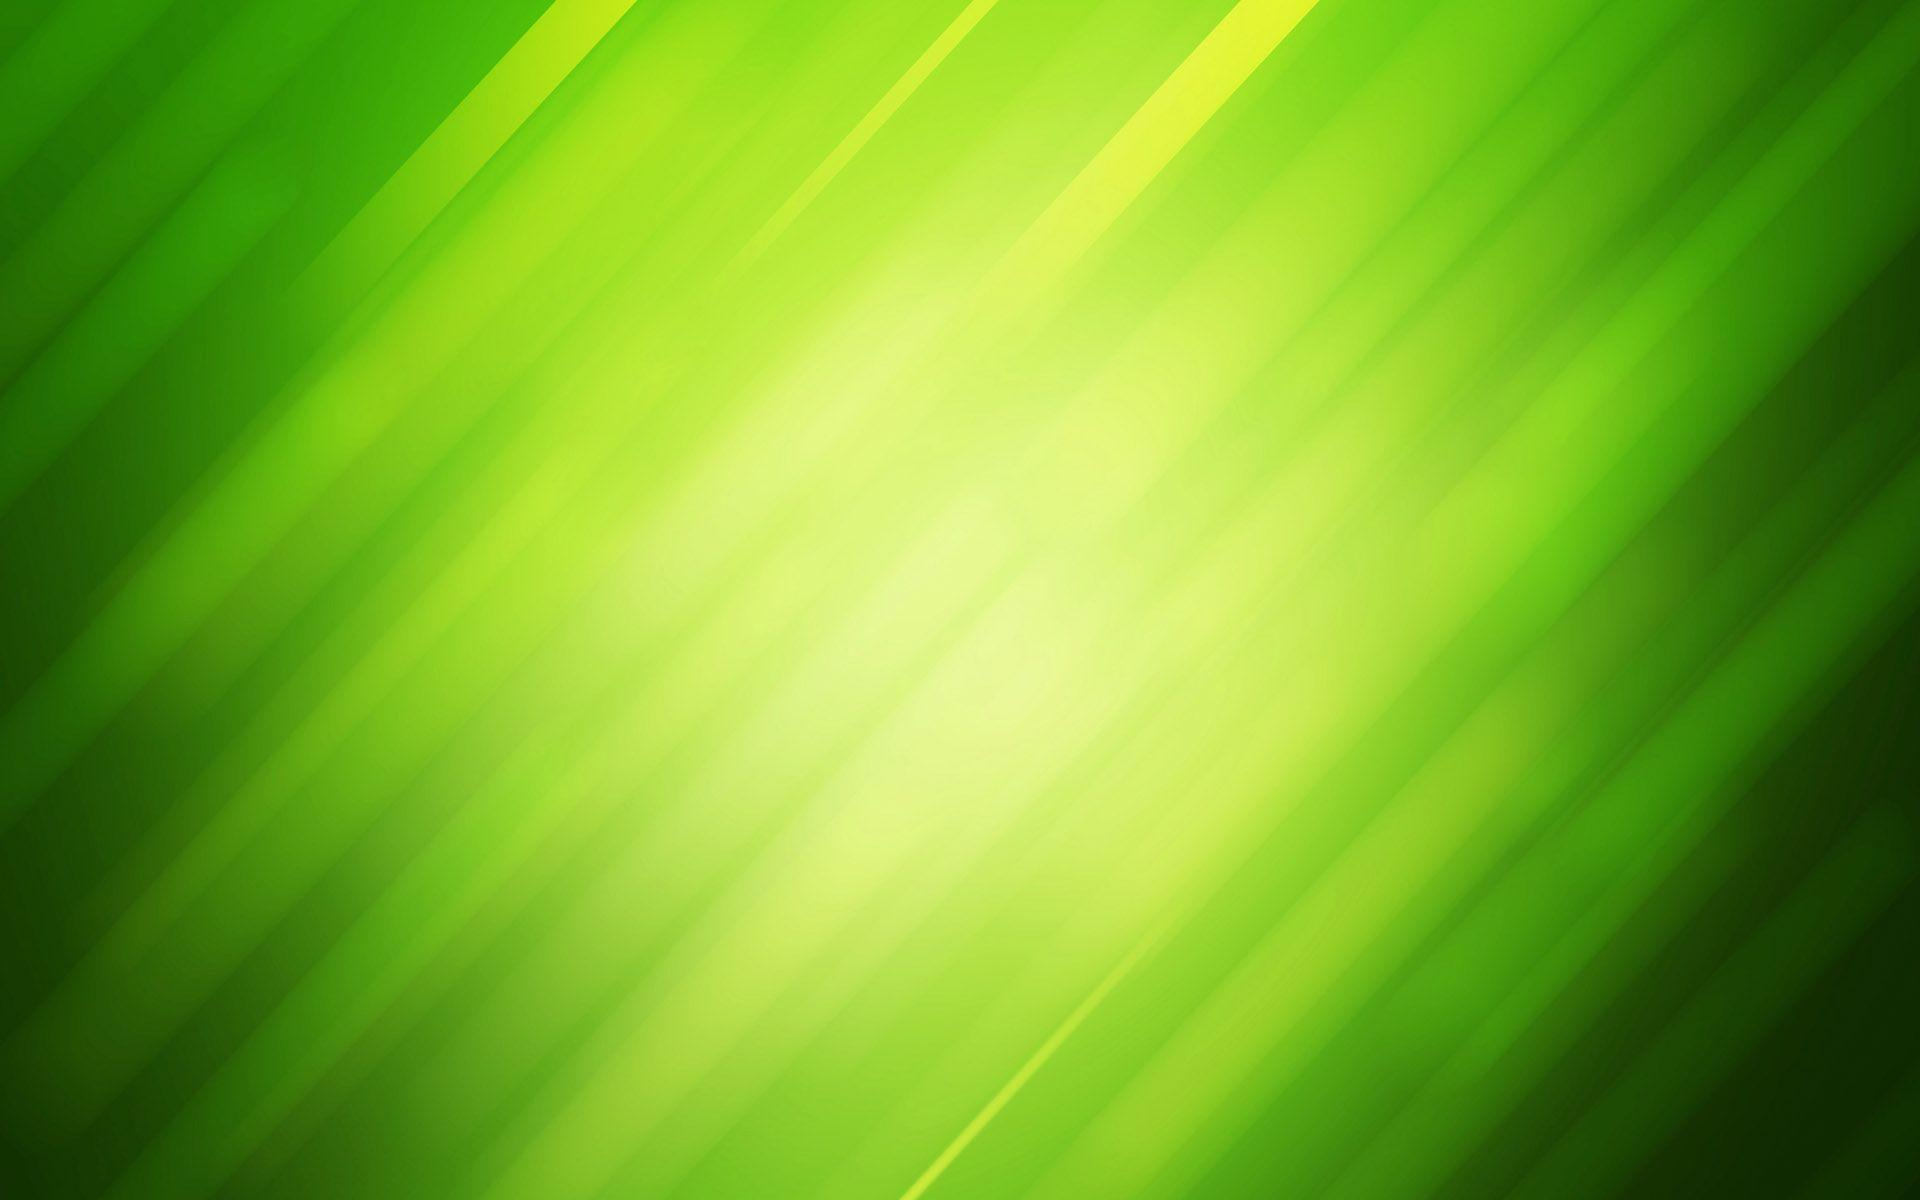 Green Backgrounds Wallpapers - Wallpaper Cave